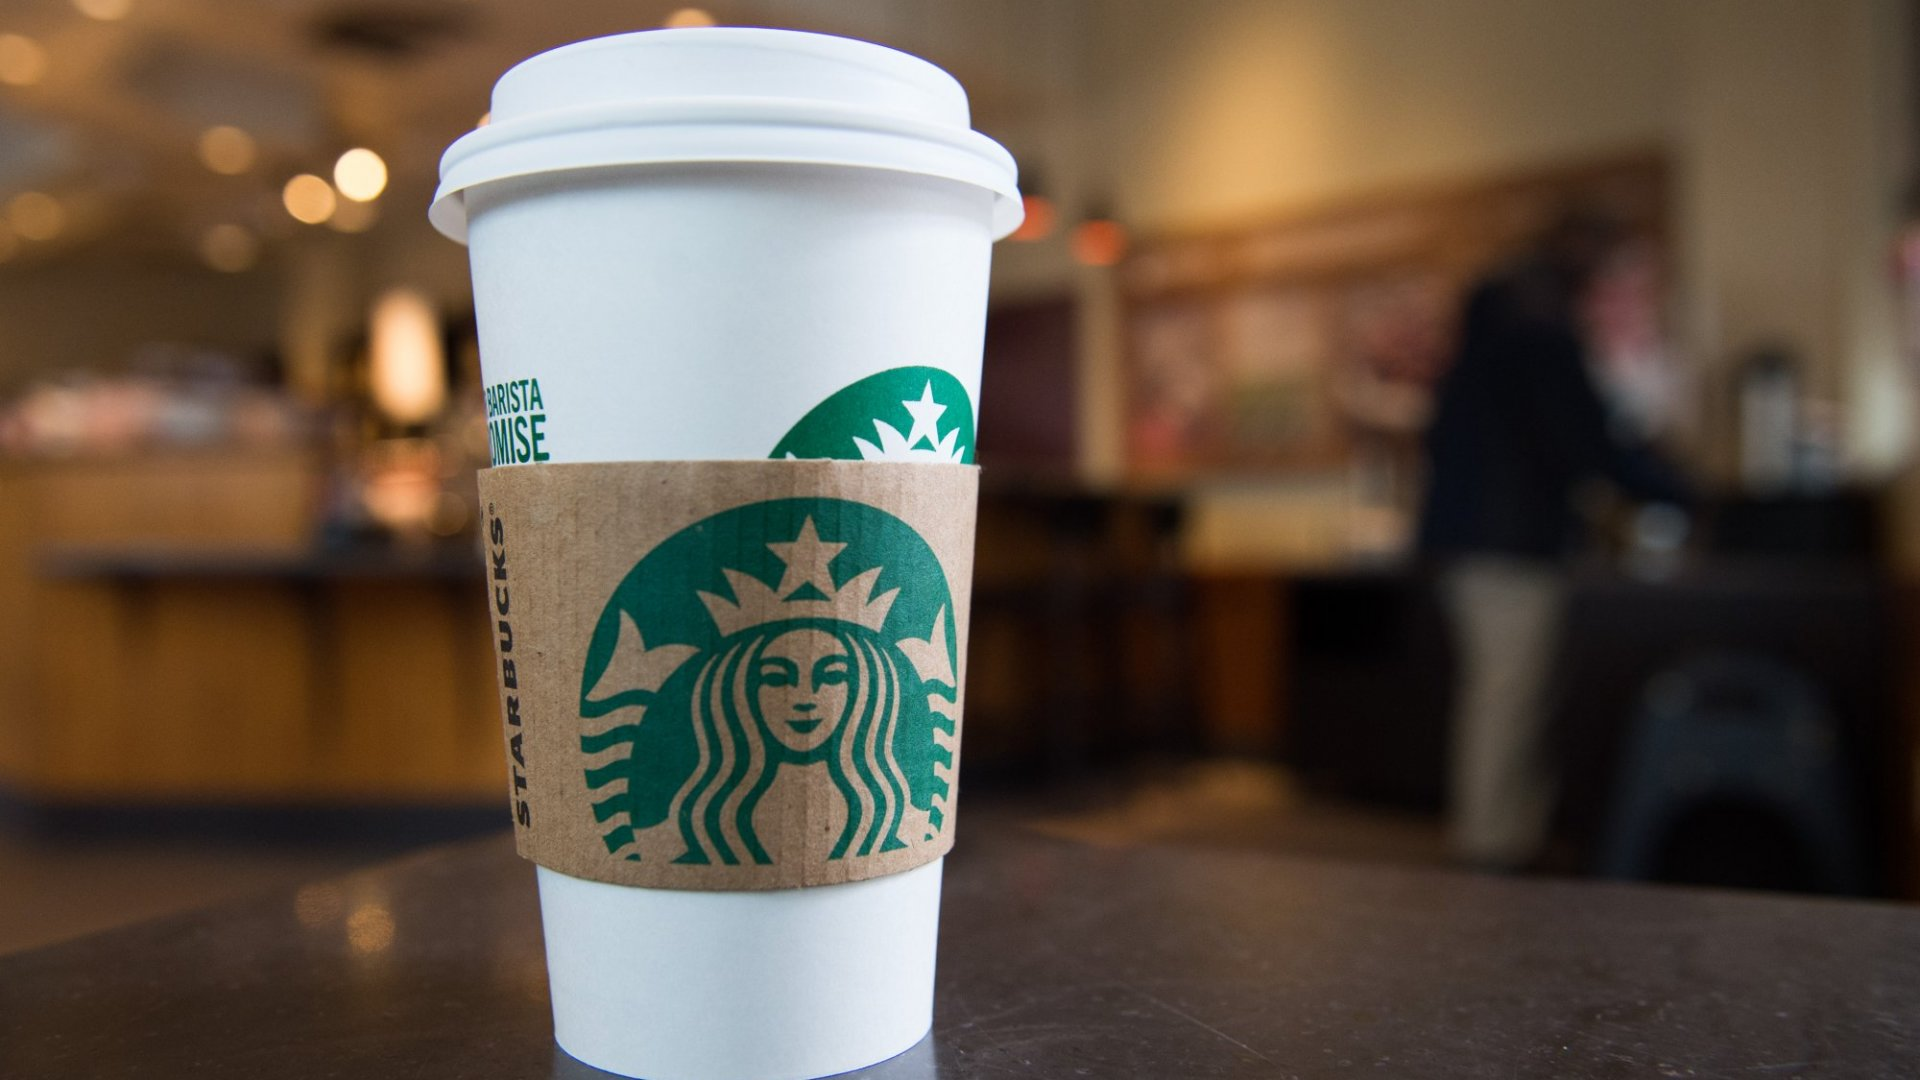 Starbucks Just Made a Stunning Announcement That Will Leave Thousands of Loyal Customers Empty-Handed